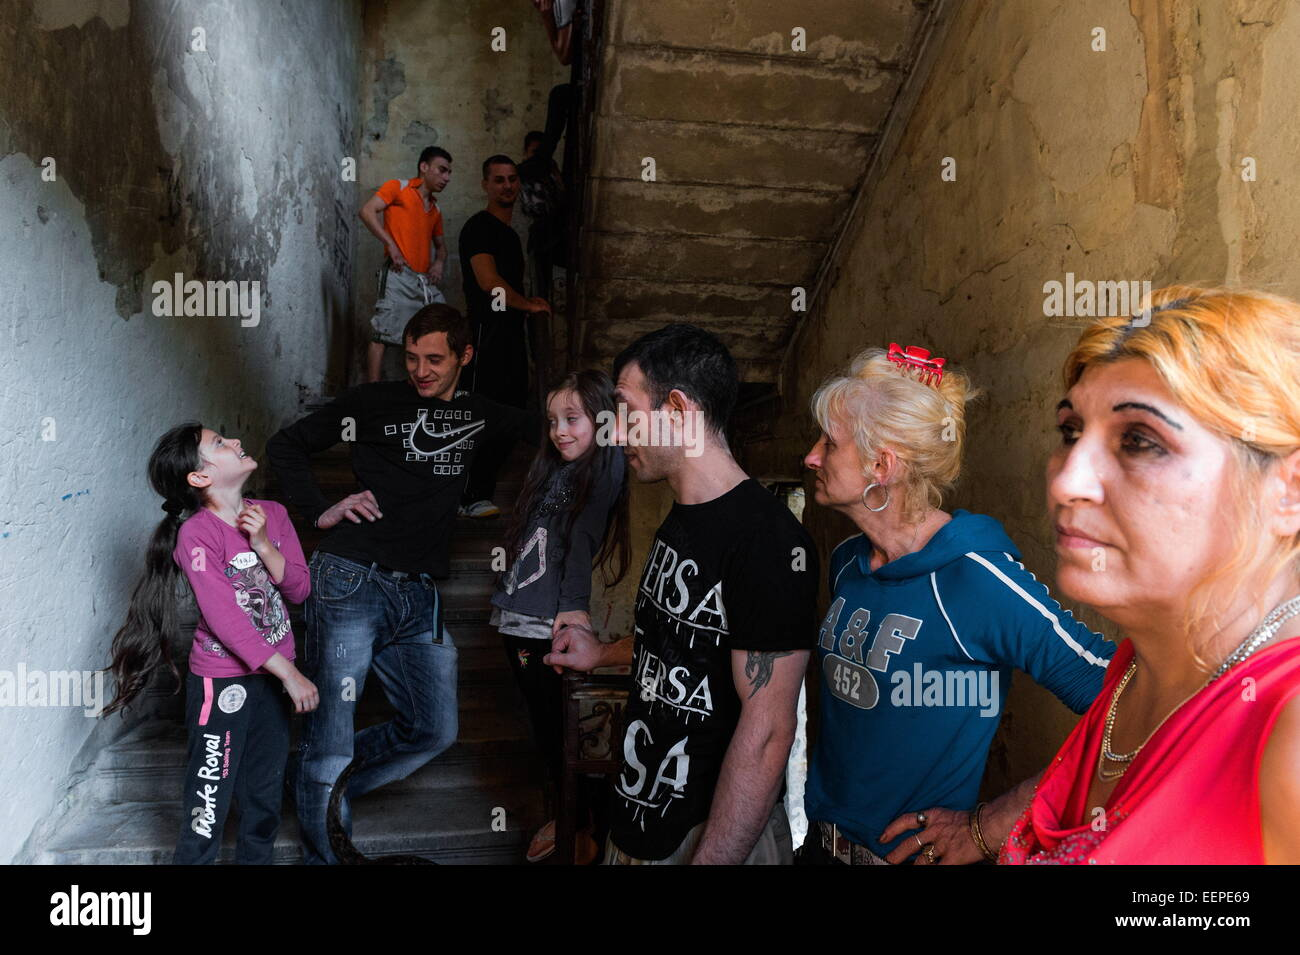 Budapest, Hungary. 26th May, 2014. A Roma family gathers in a stairwell of their state owned building. Many promises - Stock Image